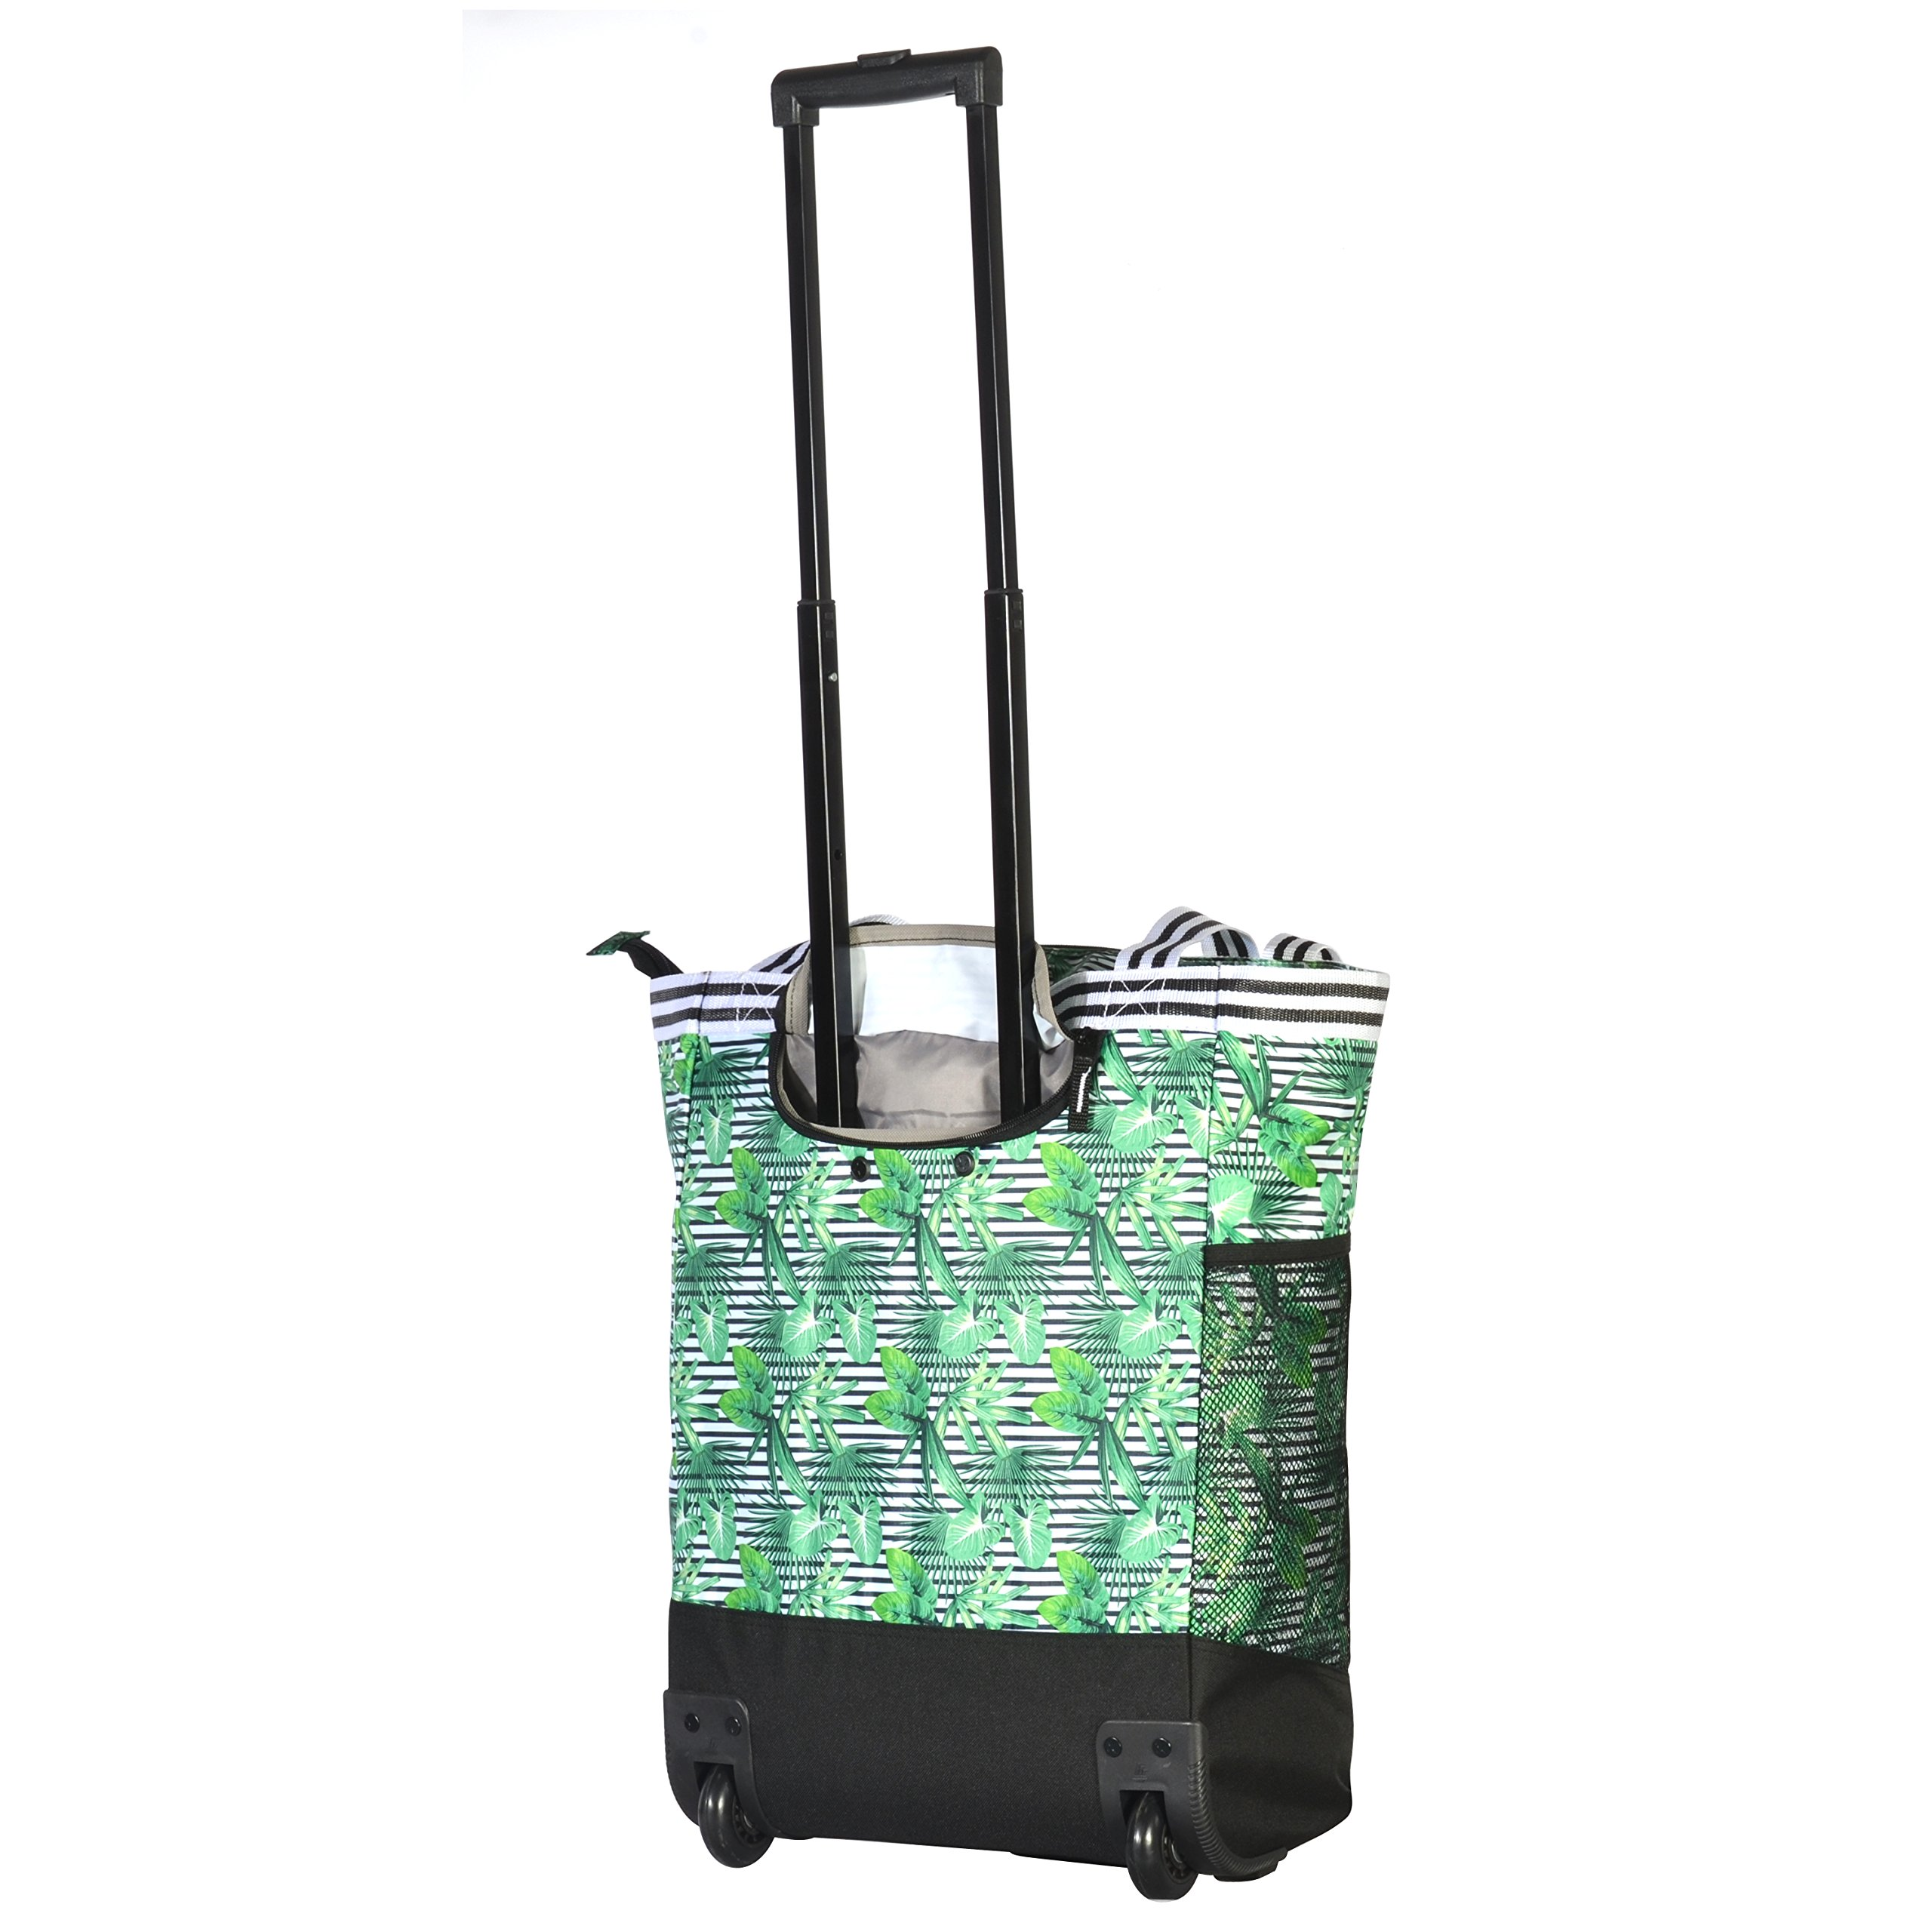 Olympia 2-Piece Rolling Shopper Tote and Cooler Bag, Rain Forest by Olympia (Image #4)